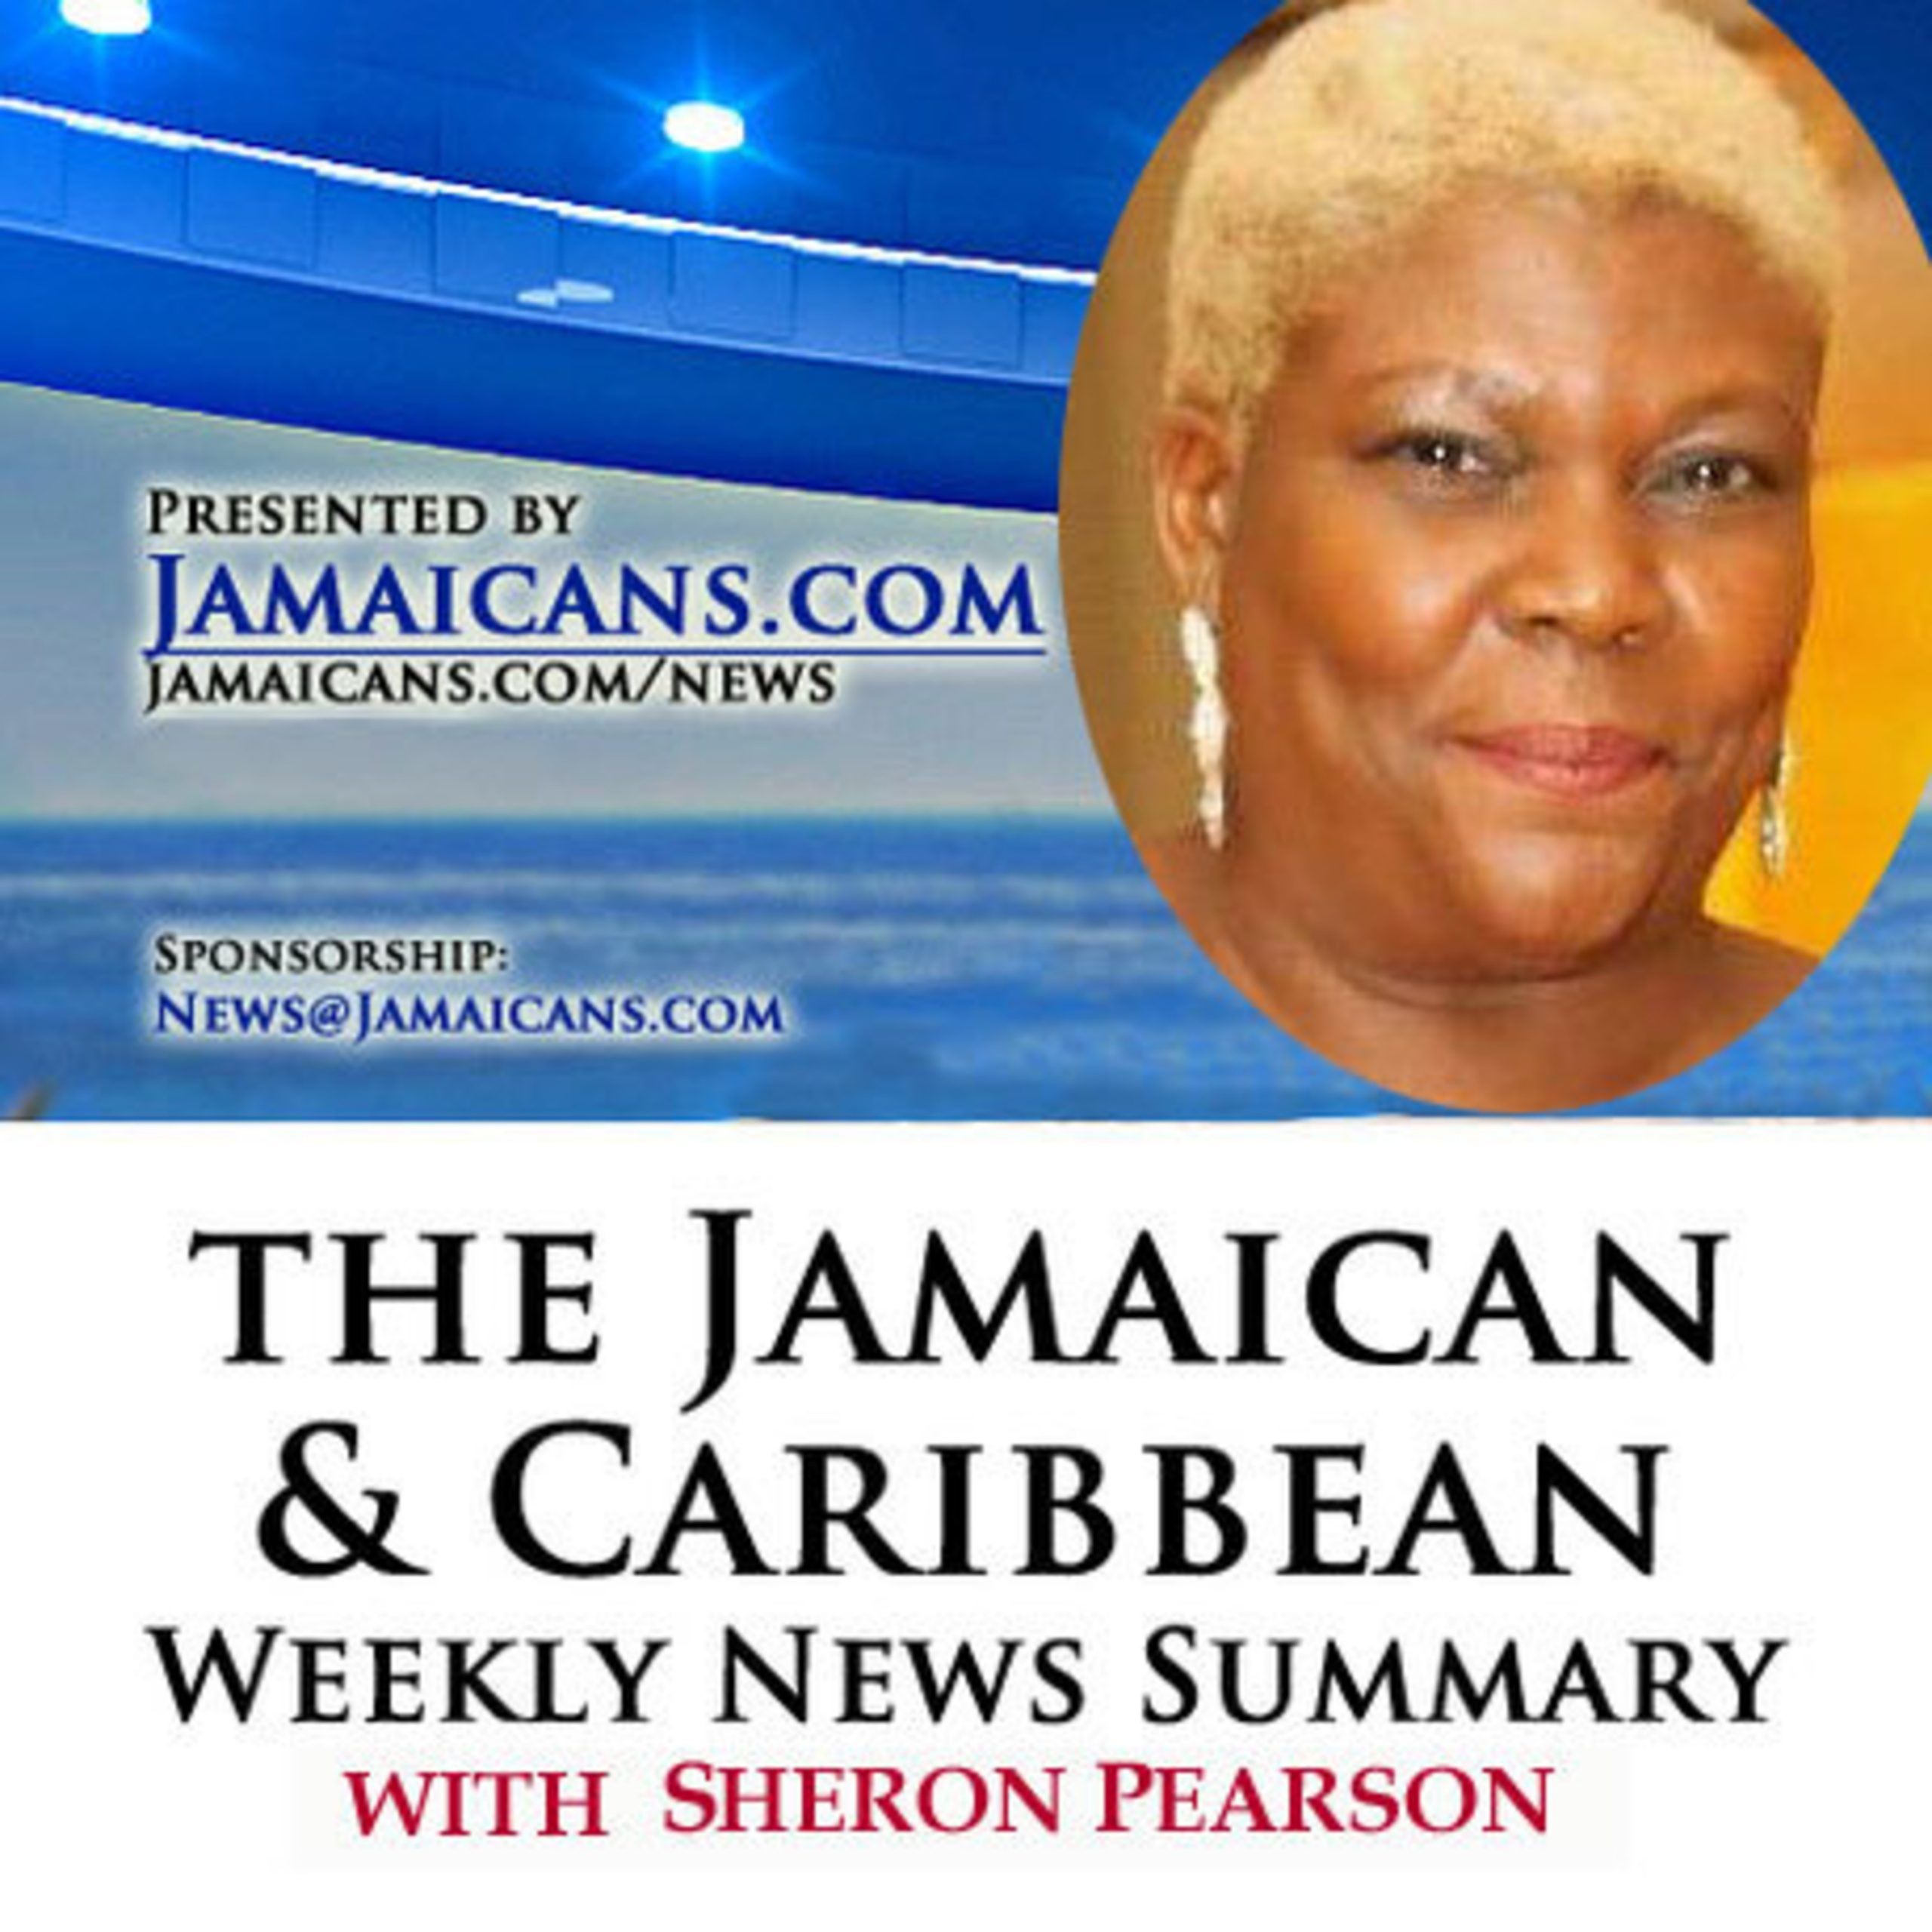 Listen to the Podcast of The Jamaica & Caribbean Weekly News Summary for the week ending July 3, 2020